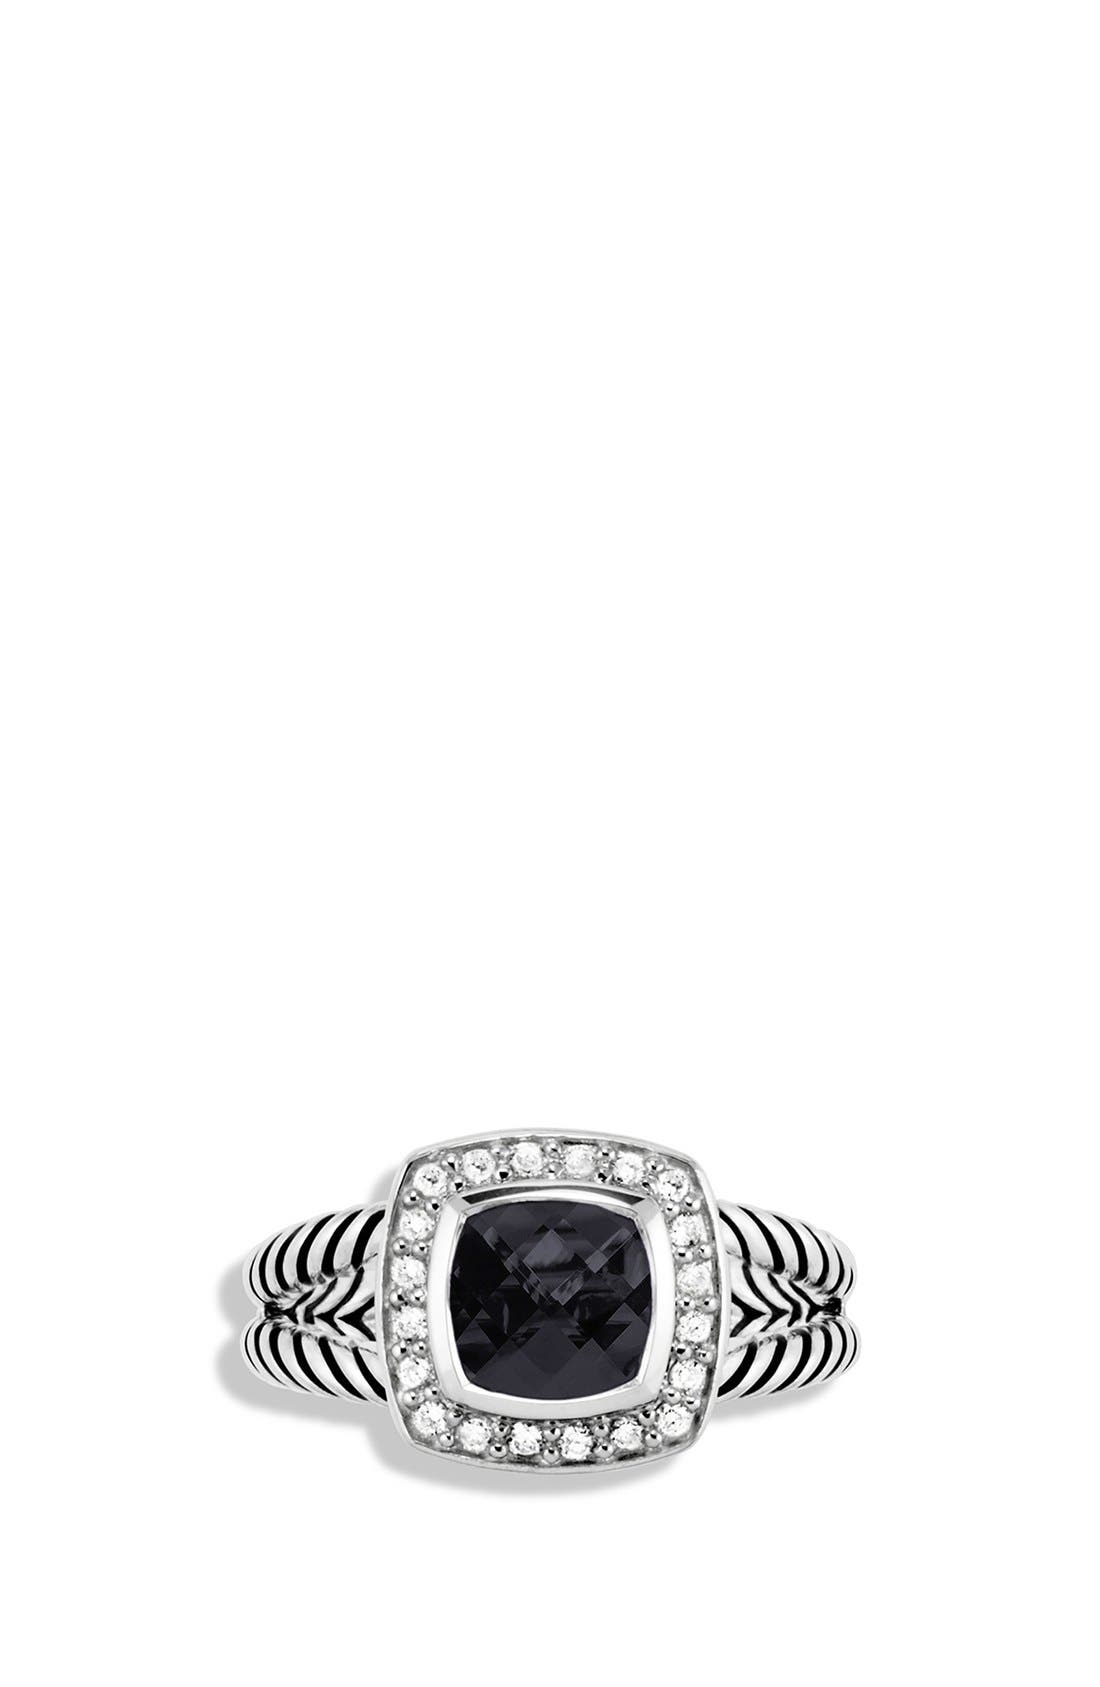 Alternate Image 3  - David Yurman 'Albion' Petite Ring with Semiprecious Stone & Diamonds